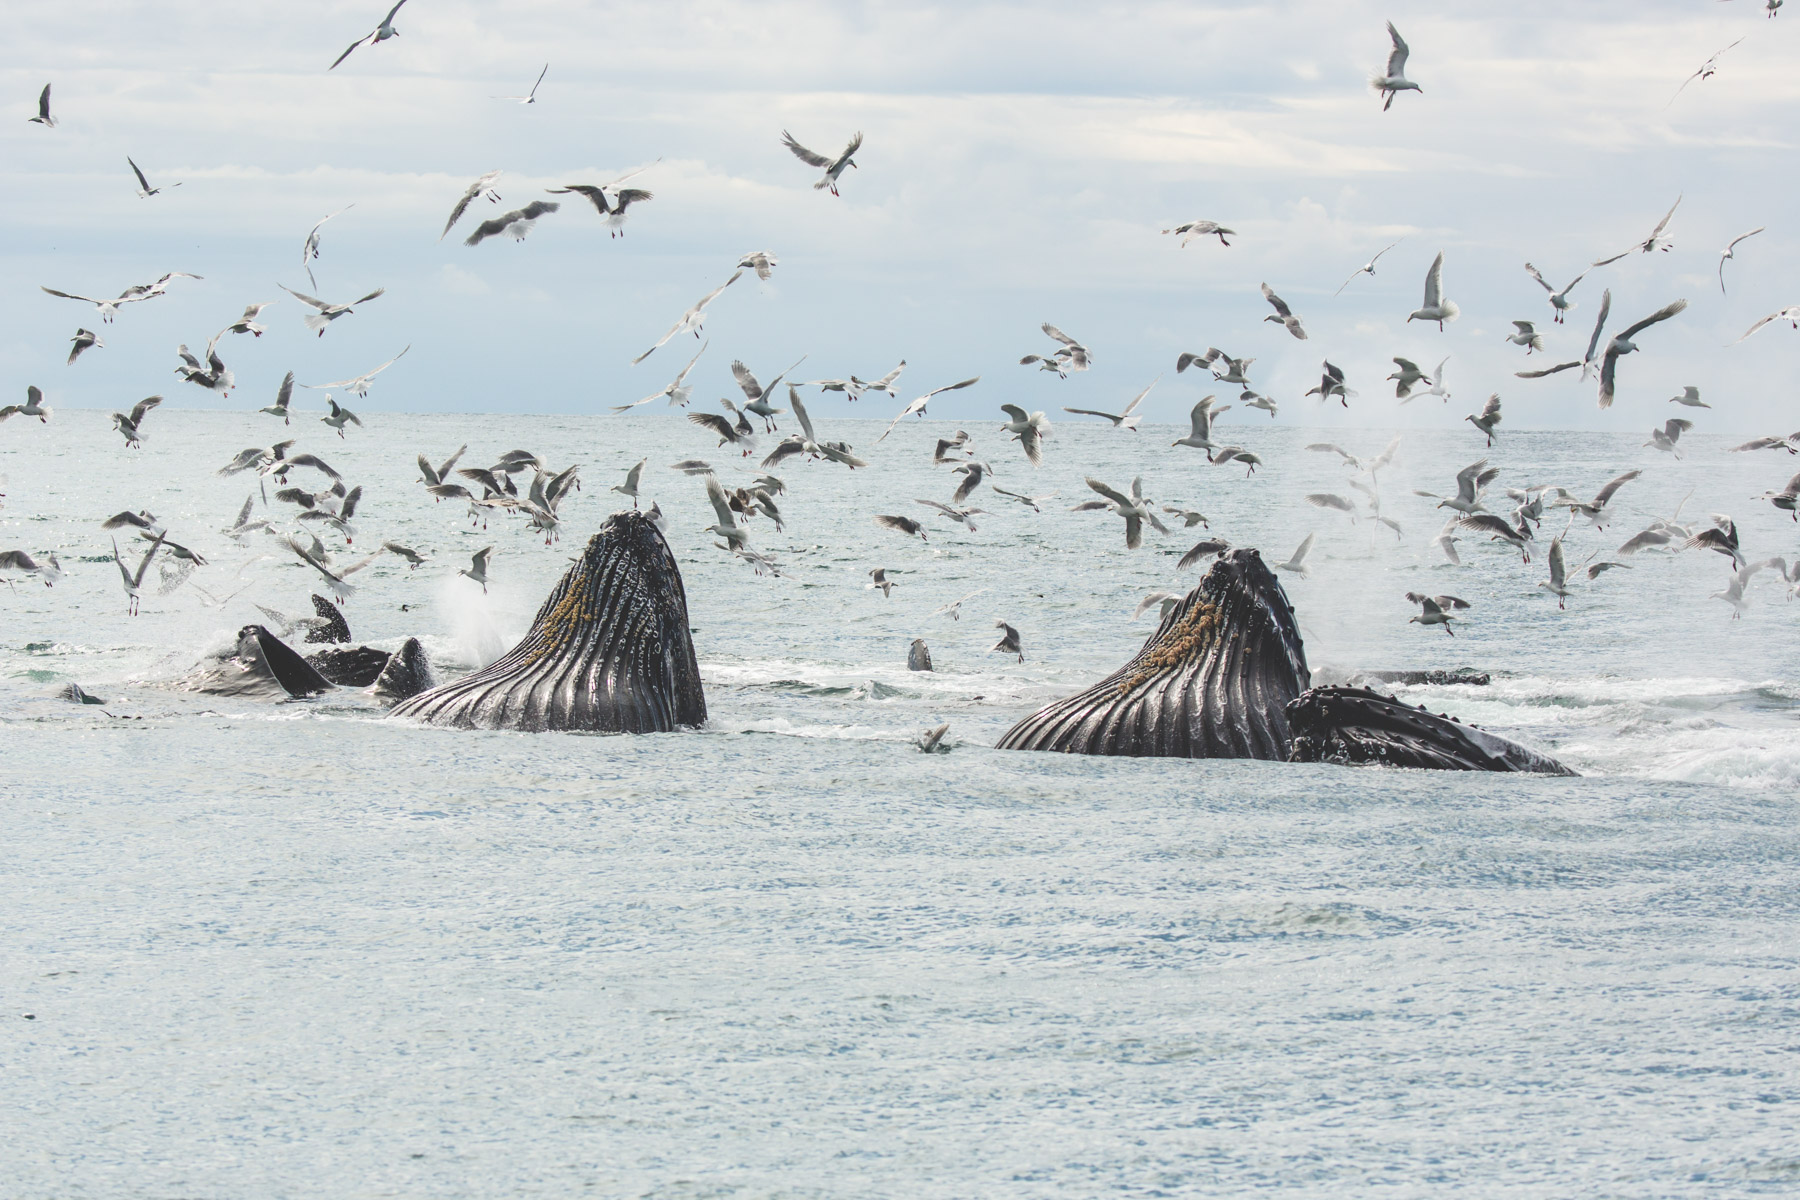 Magical whale surrounded by birds in the Alaskan ocean